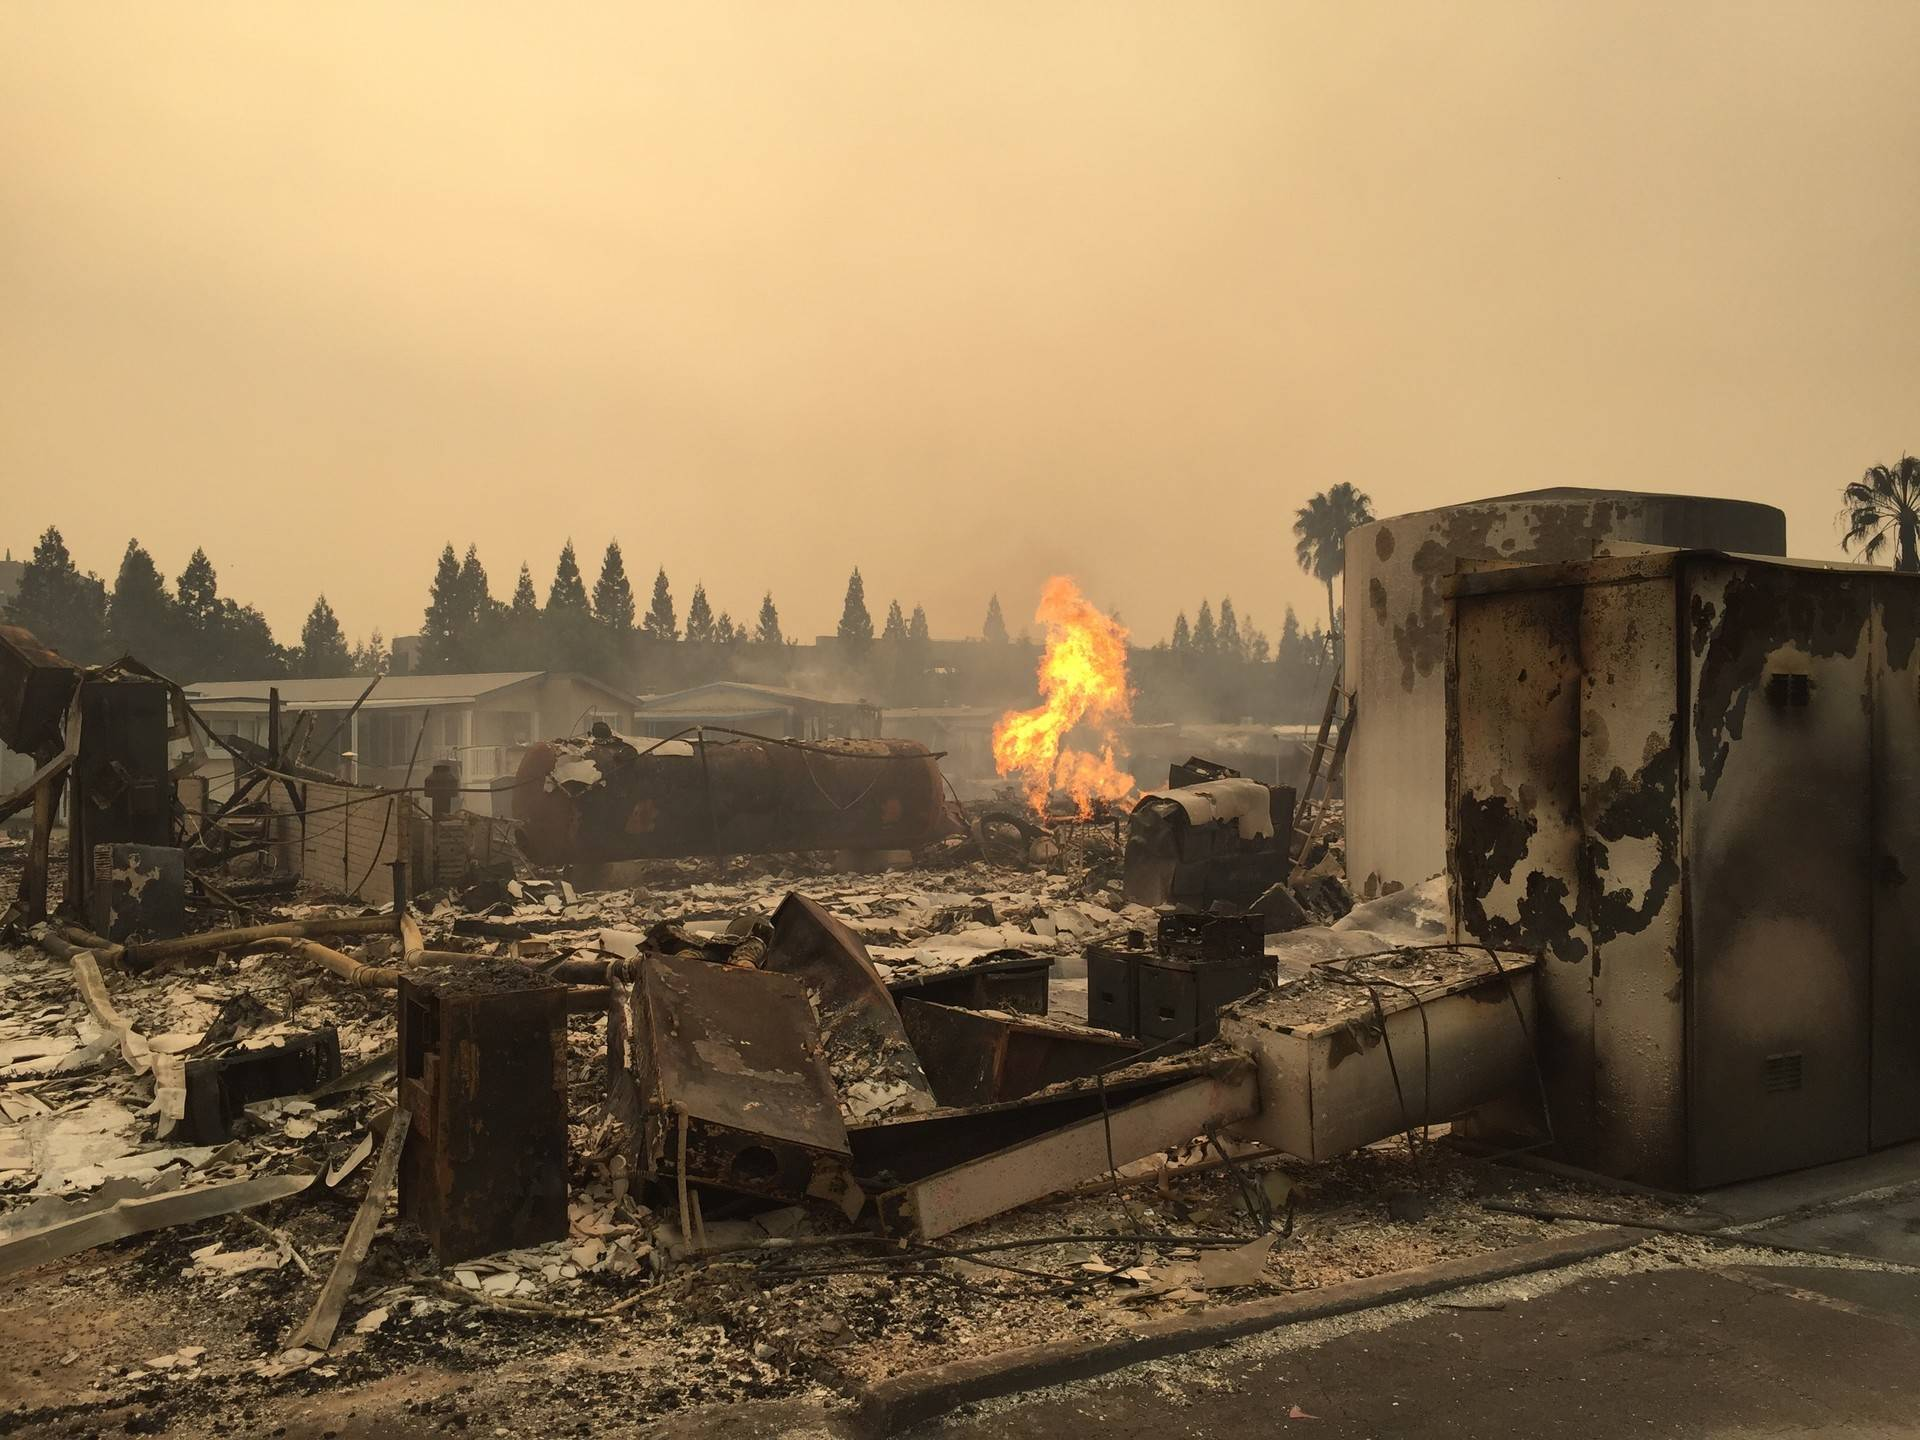 Approximately 90 percent of homes were destroyed at Journey's End Mobile Home Park in Santa Rosa. Photo taken Oct. 9, 2017. Jeremy Siegel/KQED